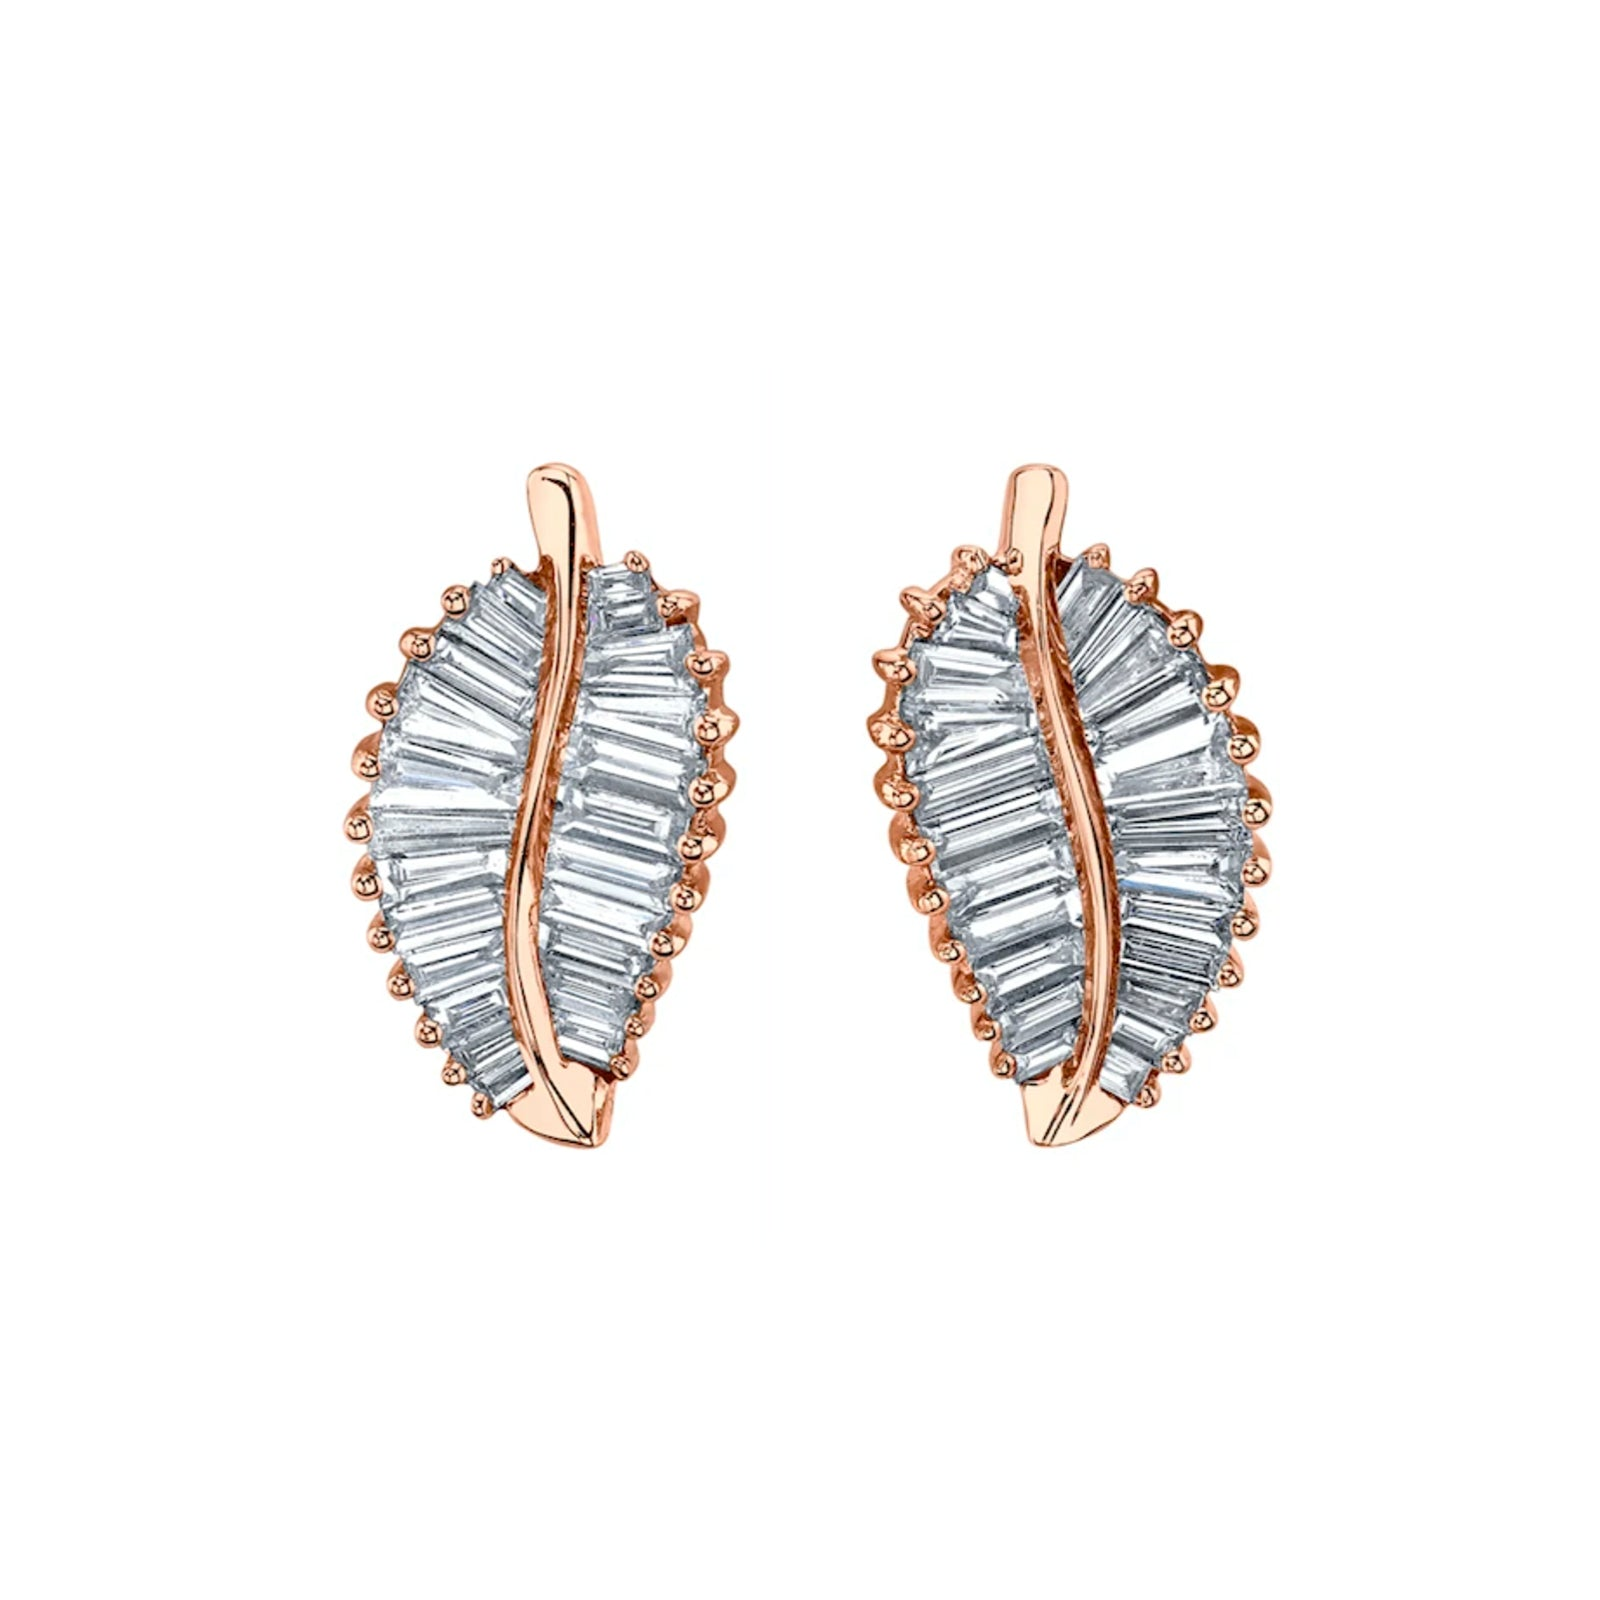 Palm Leaf Studs by Anita Ko - Earrings - Broken English Jewelry